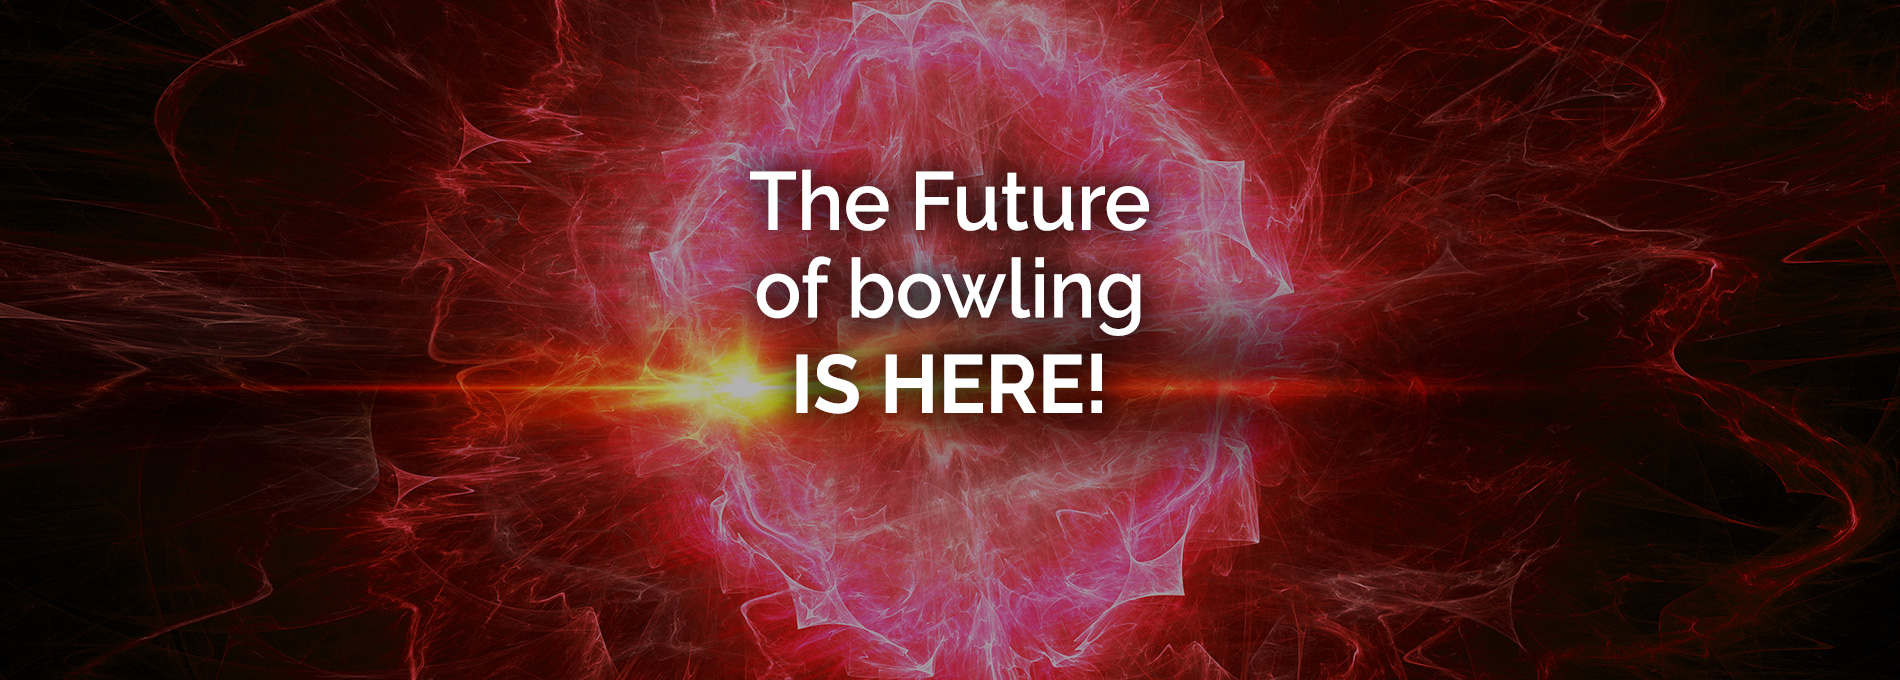 qubicaamf-bowling-the-future-of-bowling-is-here banner